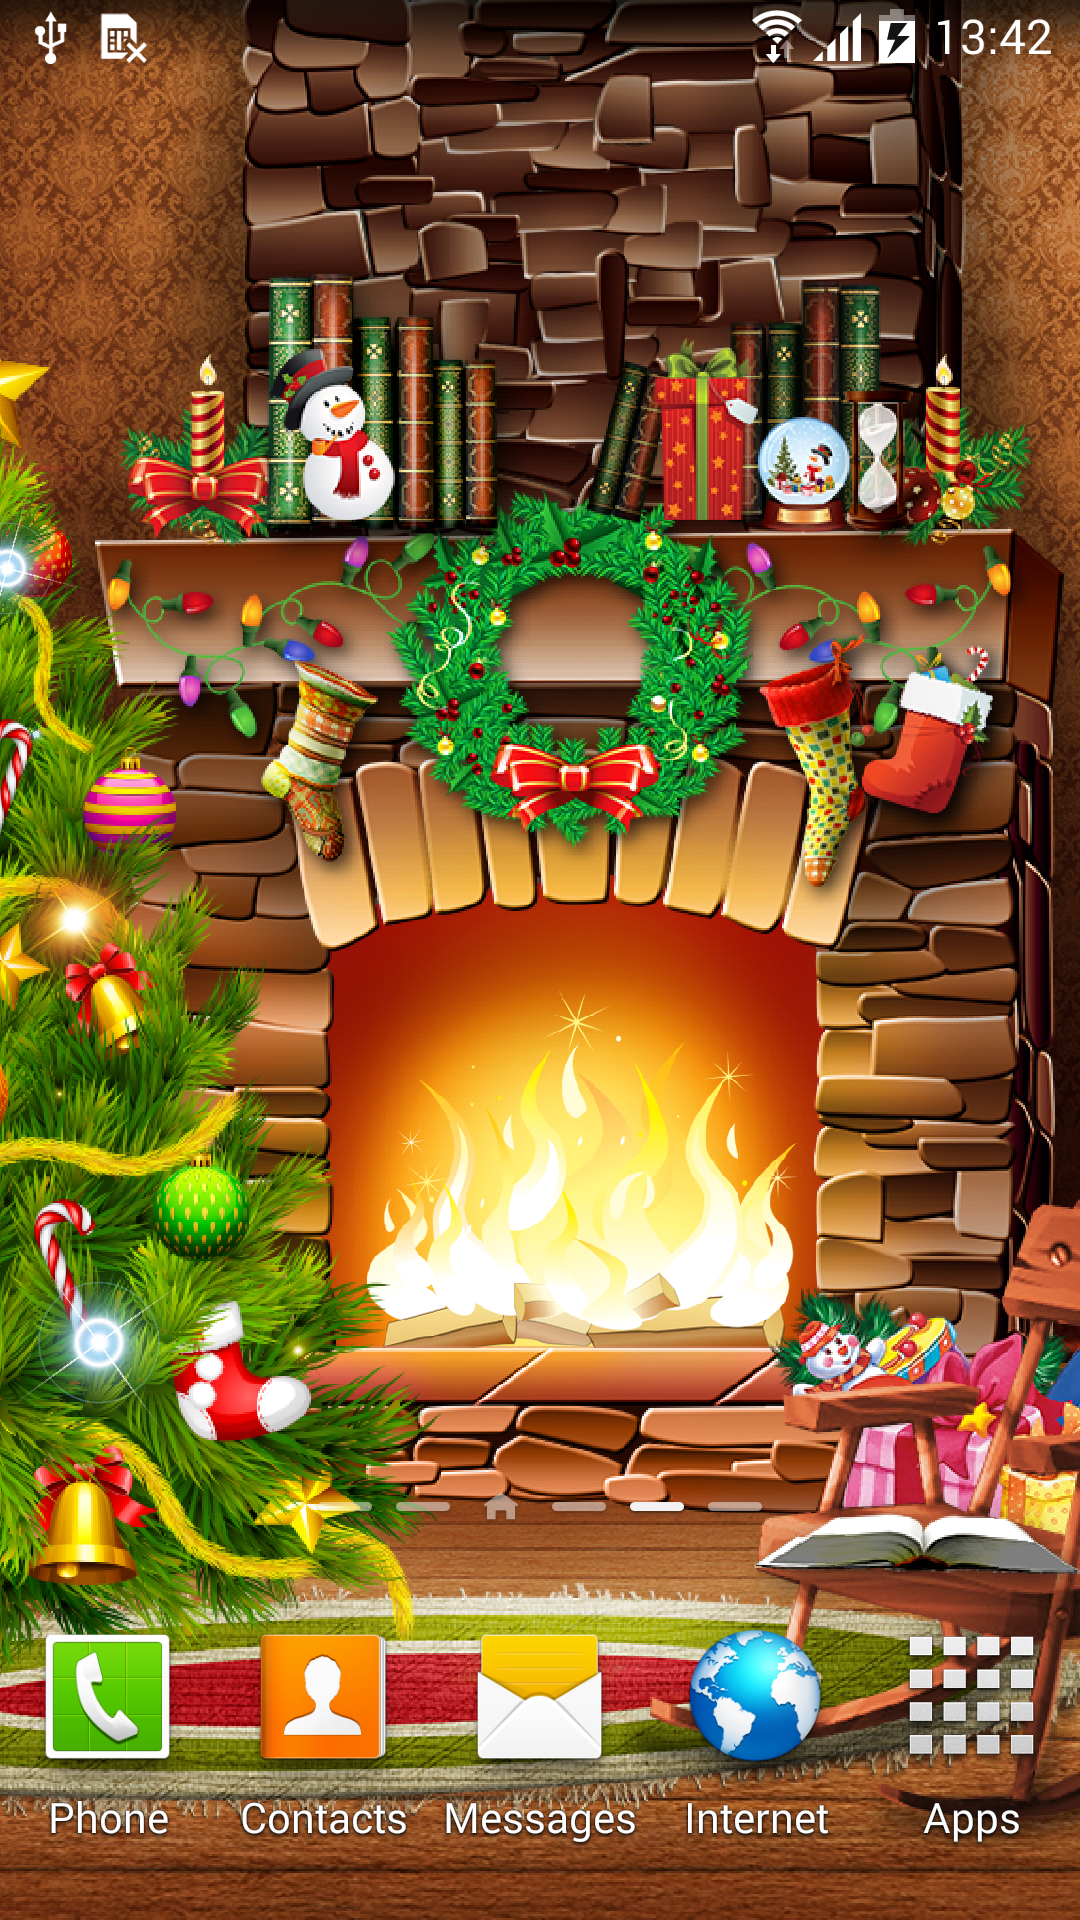 Christmas Live Wallpaper APK 1.0.7 Download for Android ...